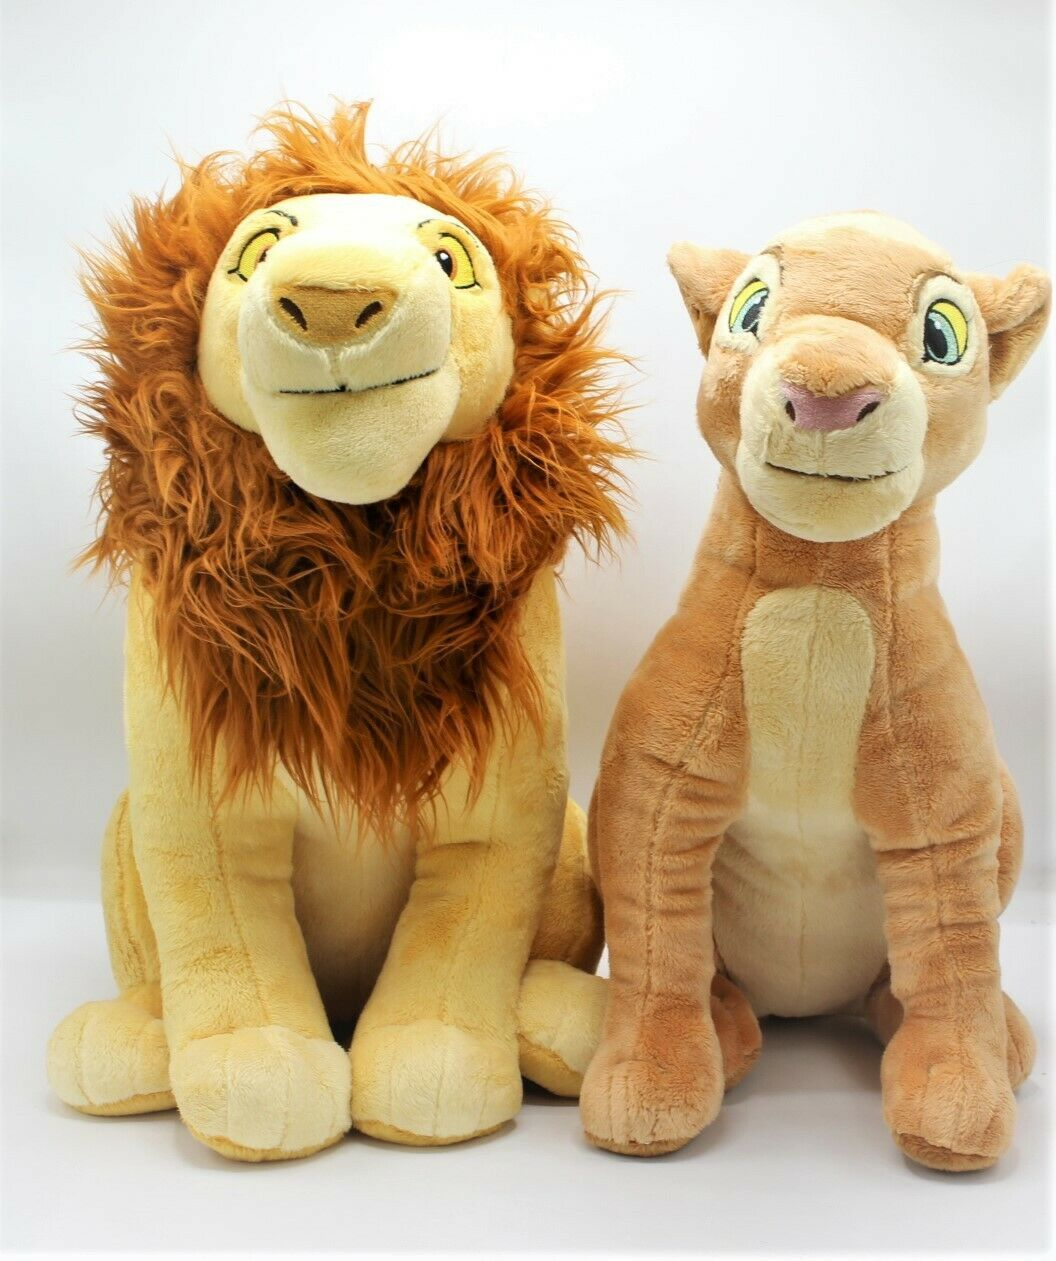 Primary image for Disney Store The Lion King Adult Simba and Nala Stuffed Plush Set 18 inch LARGE